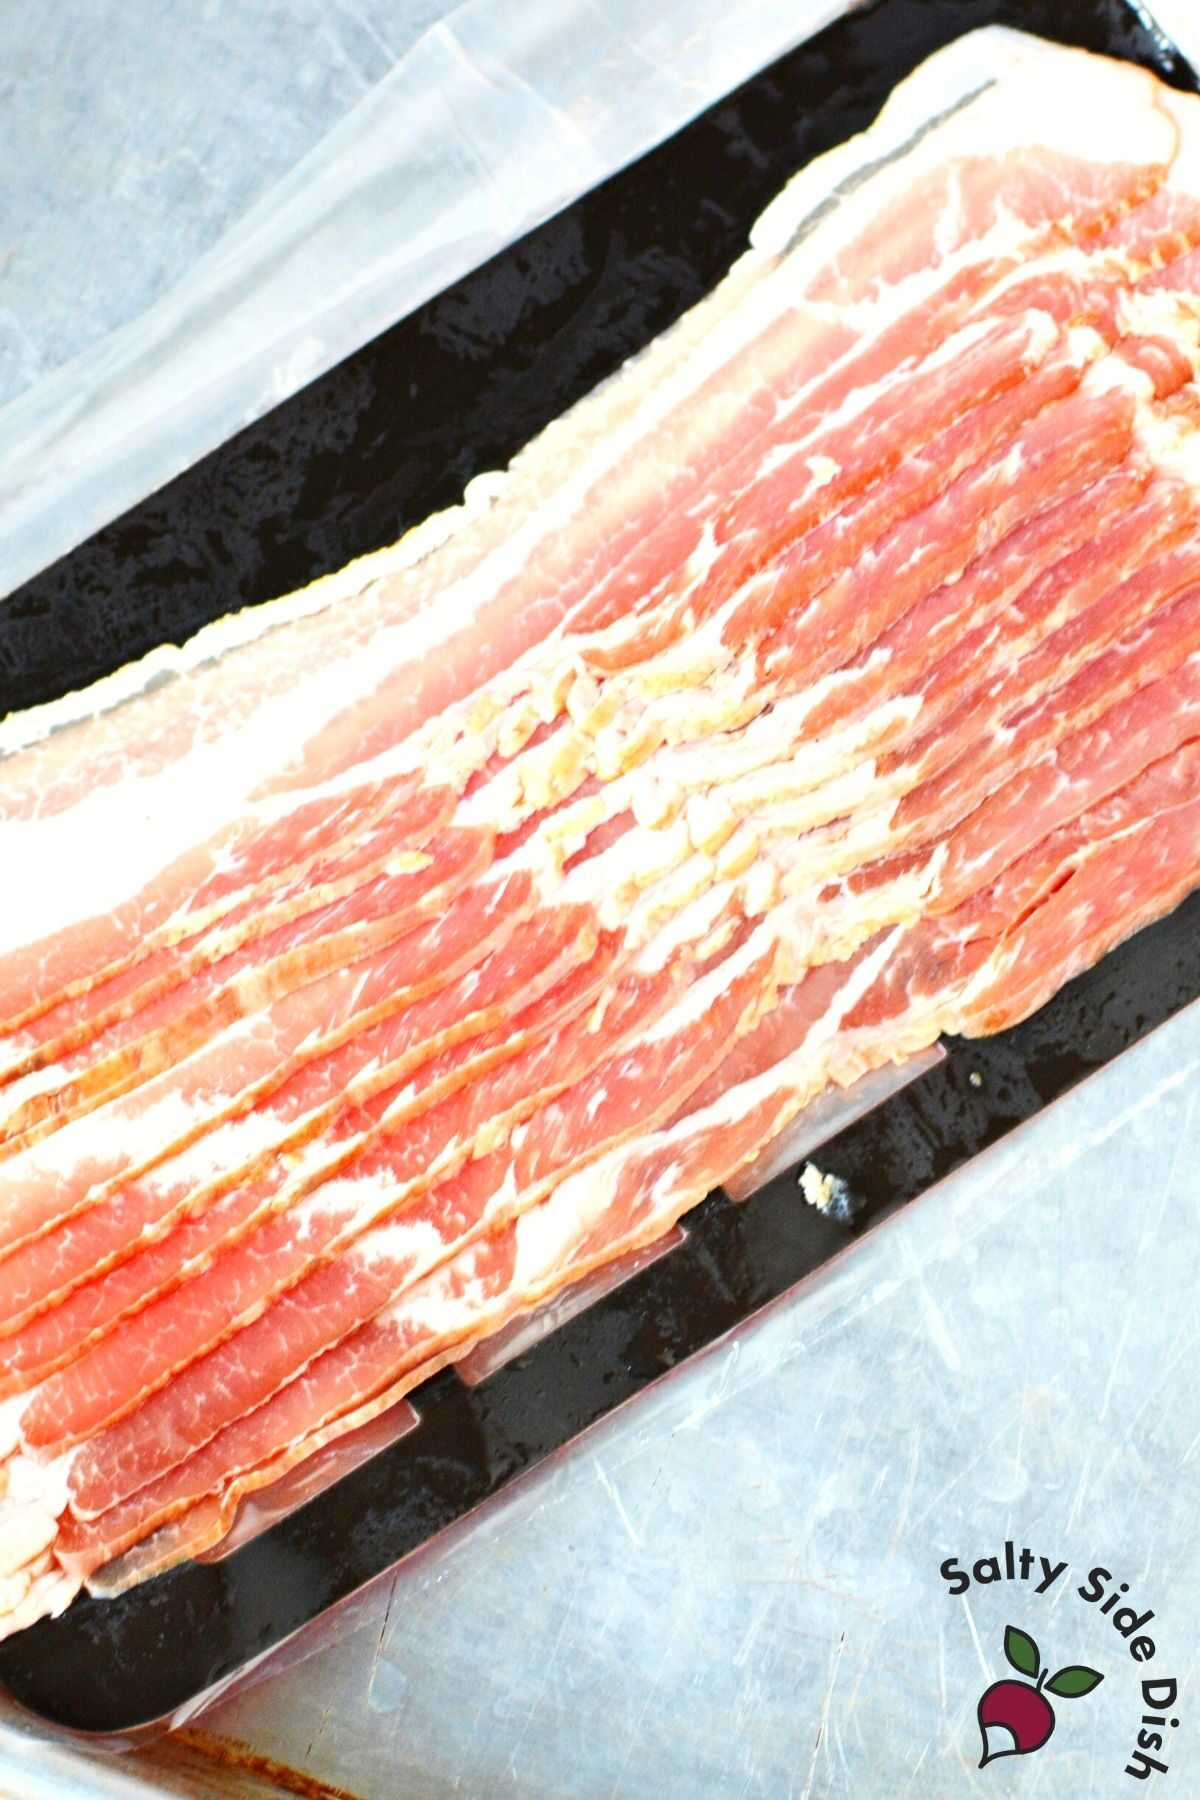 bacon package.